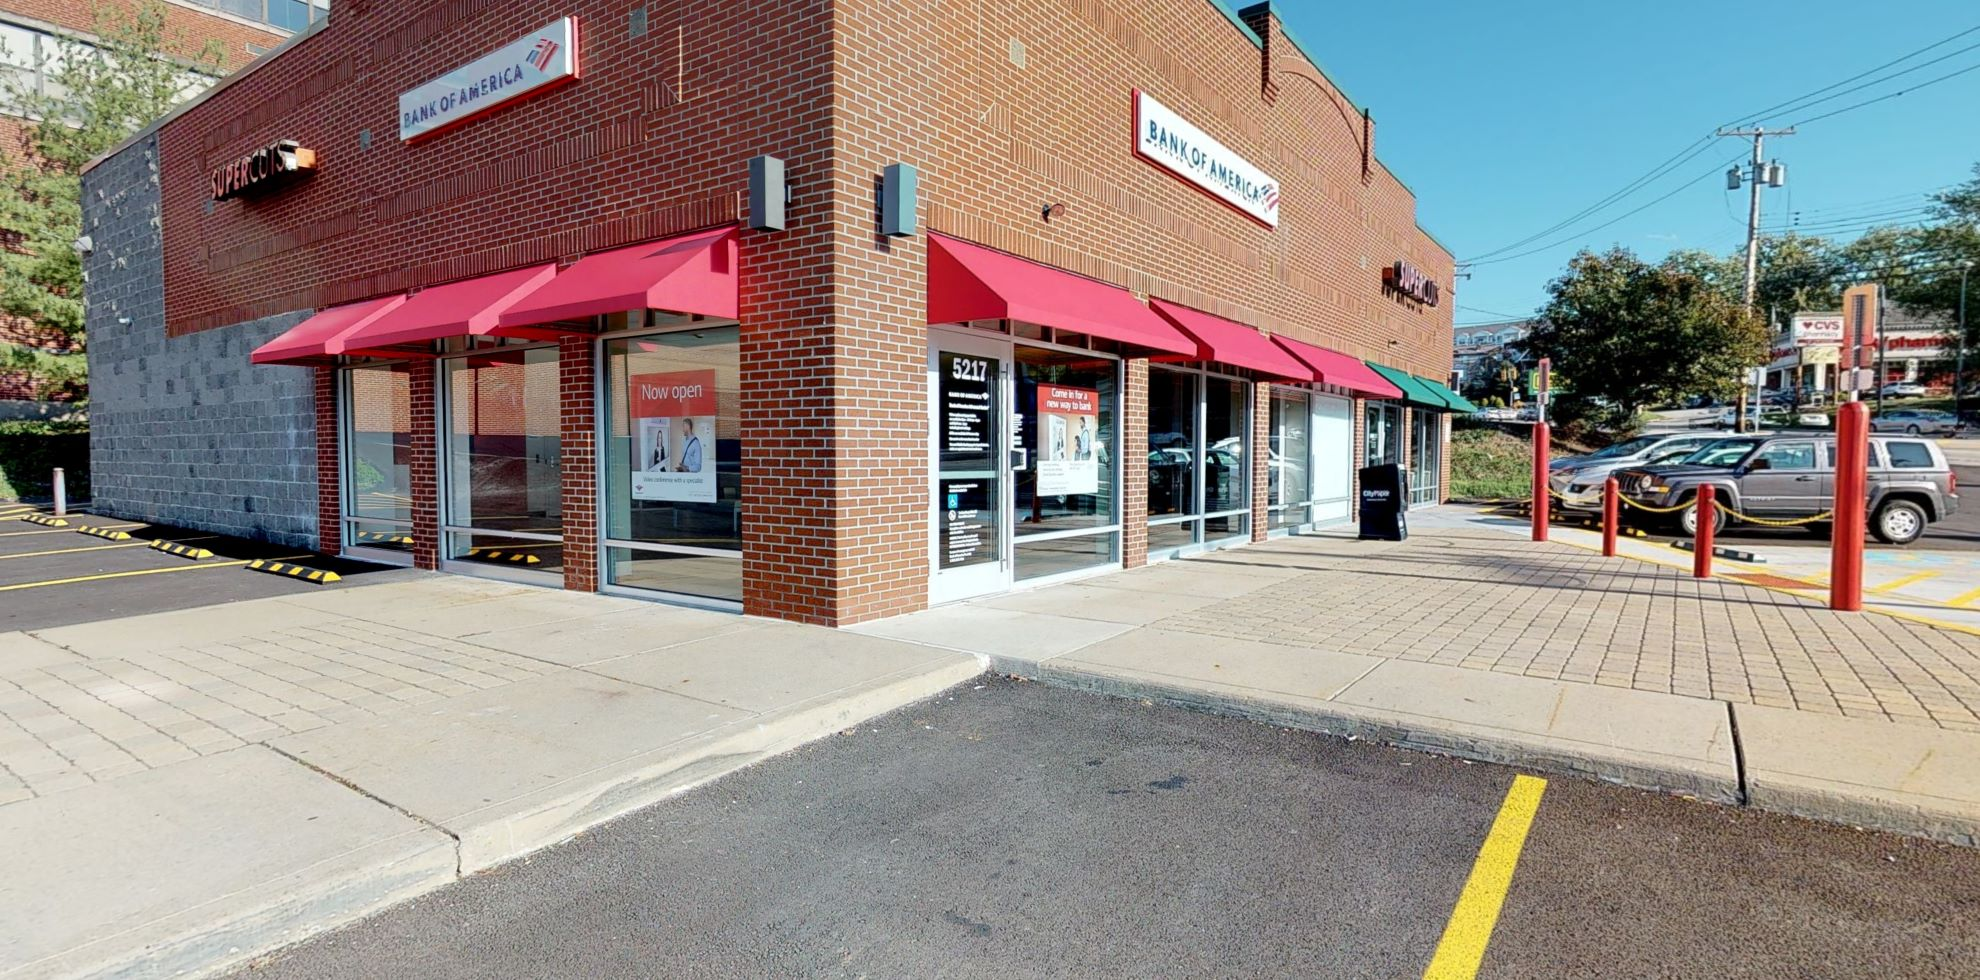 Bank of America Advanced Center with walk-up ATM | 5217 Clairton Blvd, Pittsburgh, PA 15236